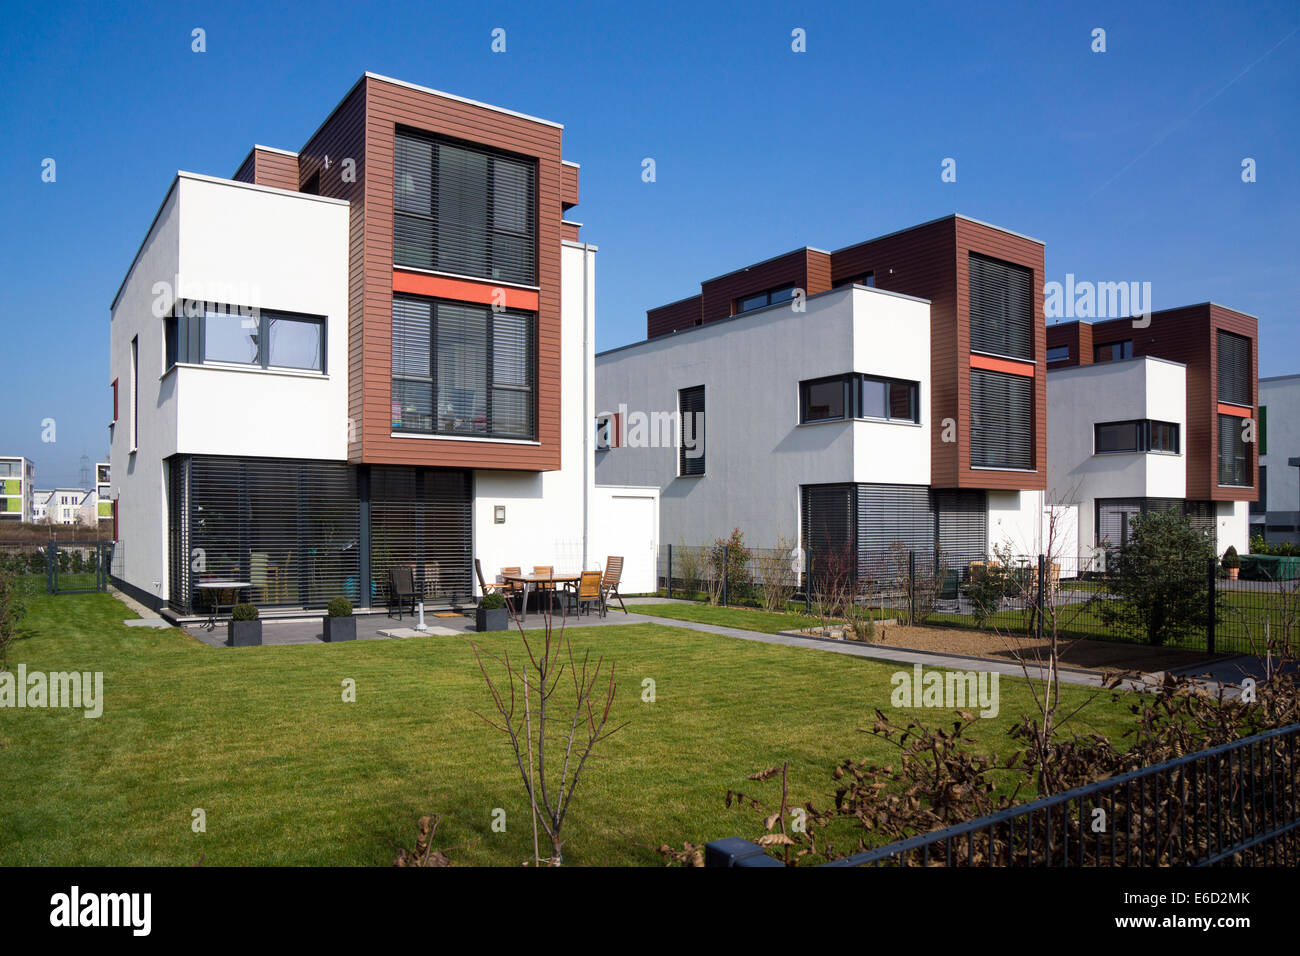 Family House Modern Architecture In The Bauhaus Style - Fashion For Home Frankfurt